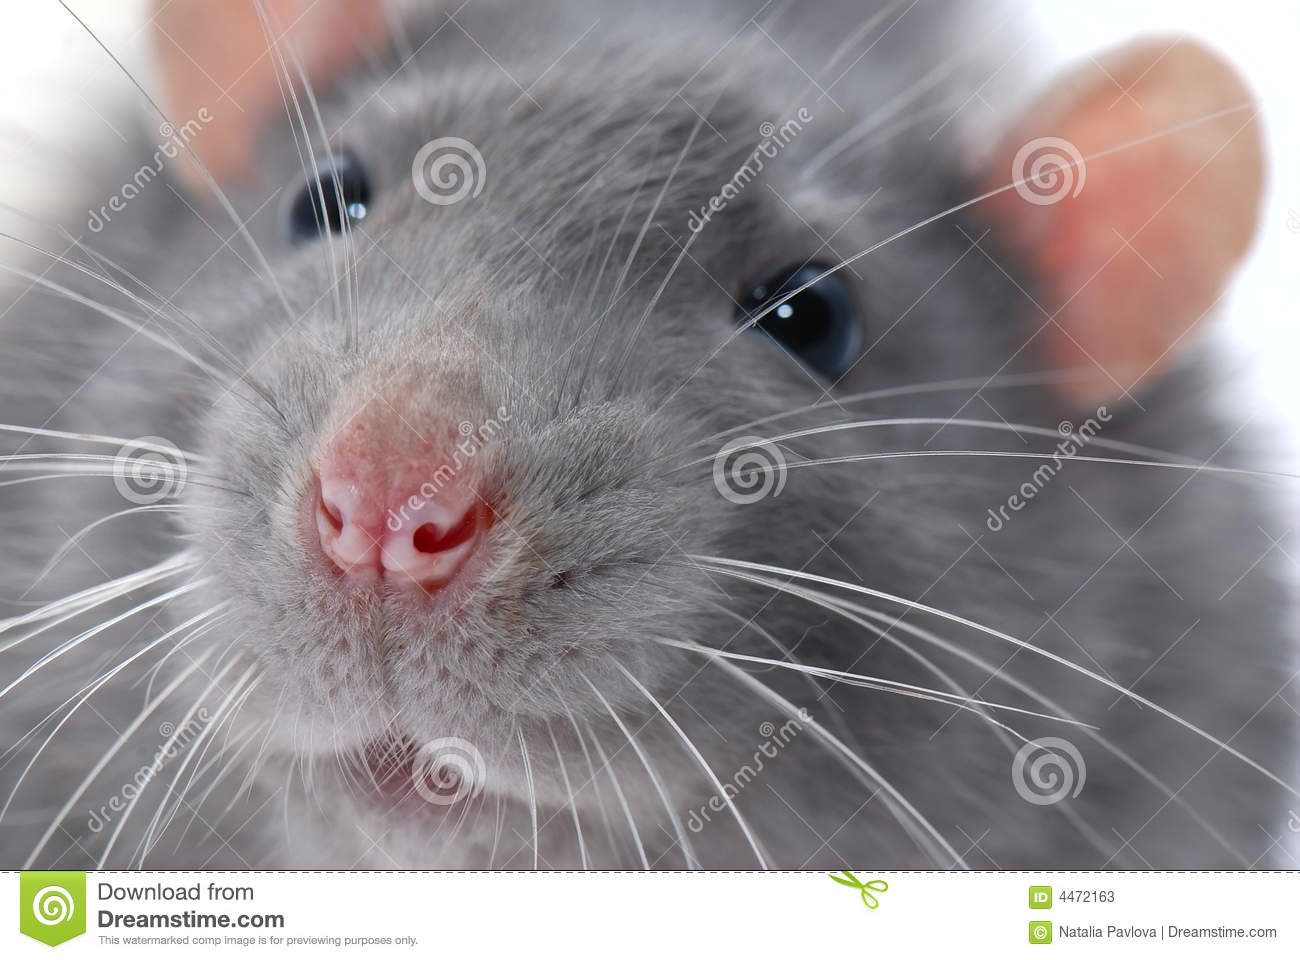 Animal Face Wallpaper Rat S Face Stock Image Image Of Rodent Close Macro